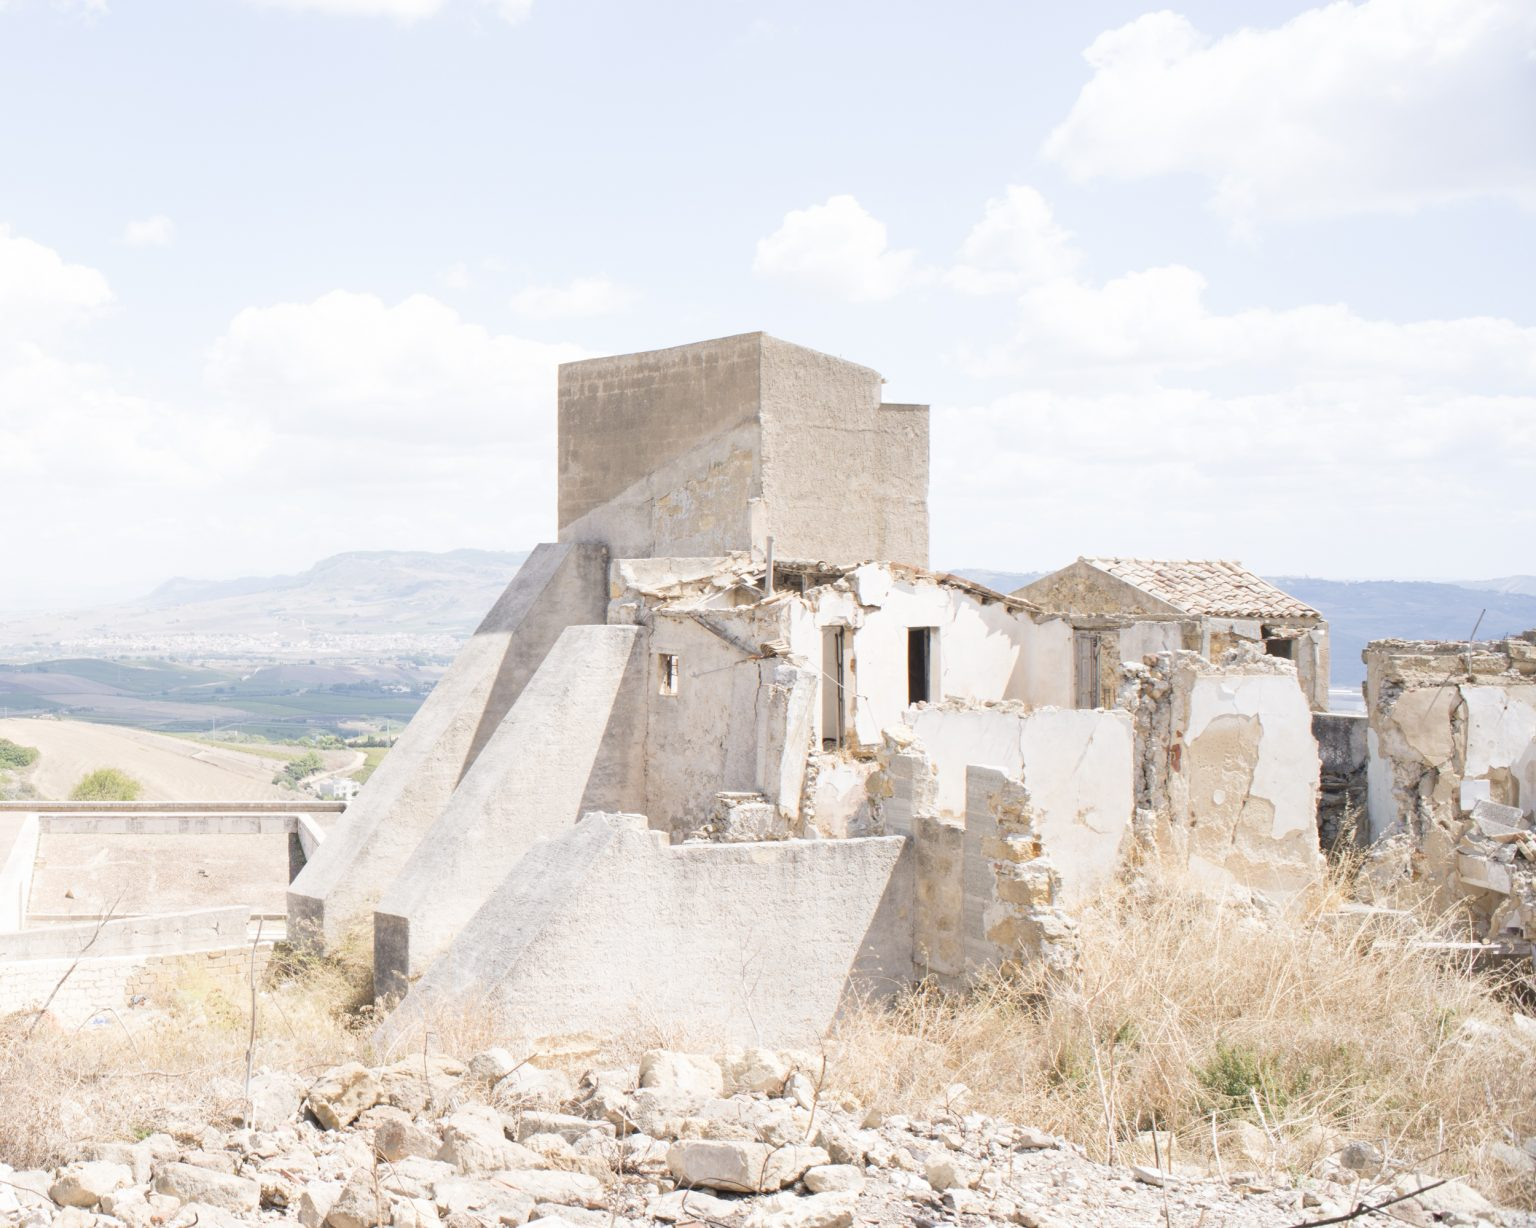 Francesco Venezia's project for the open-air theatre. In the foreground, emergency structures to stabilize some ruins caused by the earthquake of 1968; in the background, the valley of Belíce with the new town of Gibellina. Salemi, Trapani, Italy, 2018